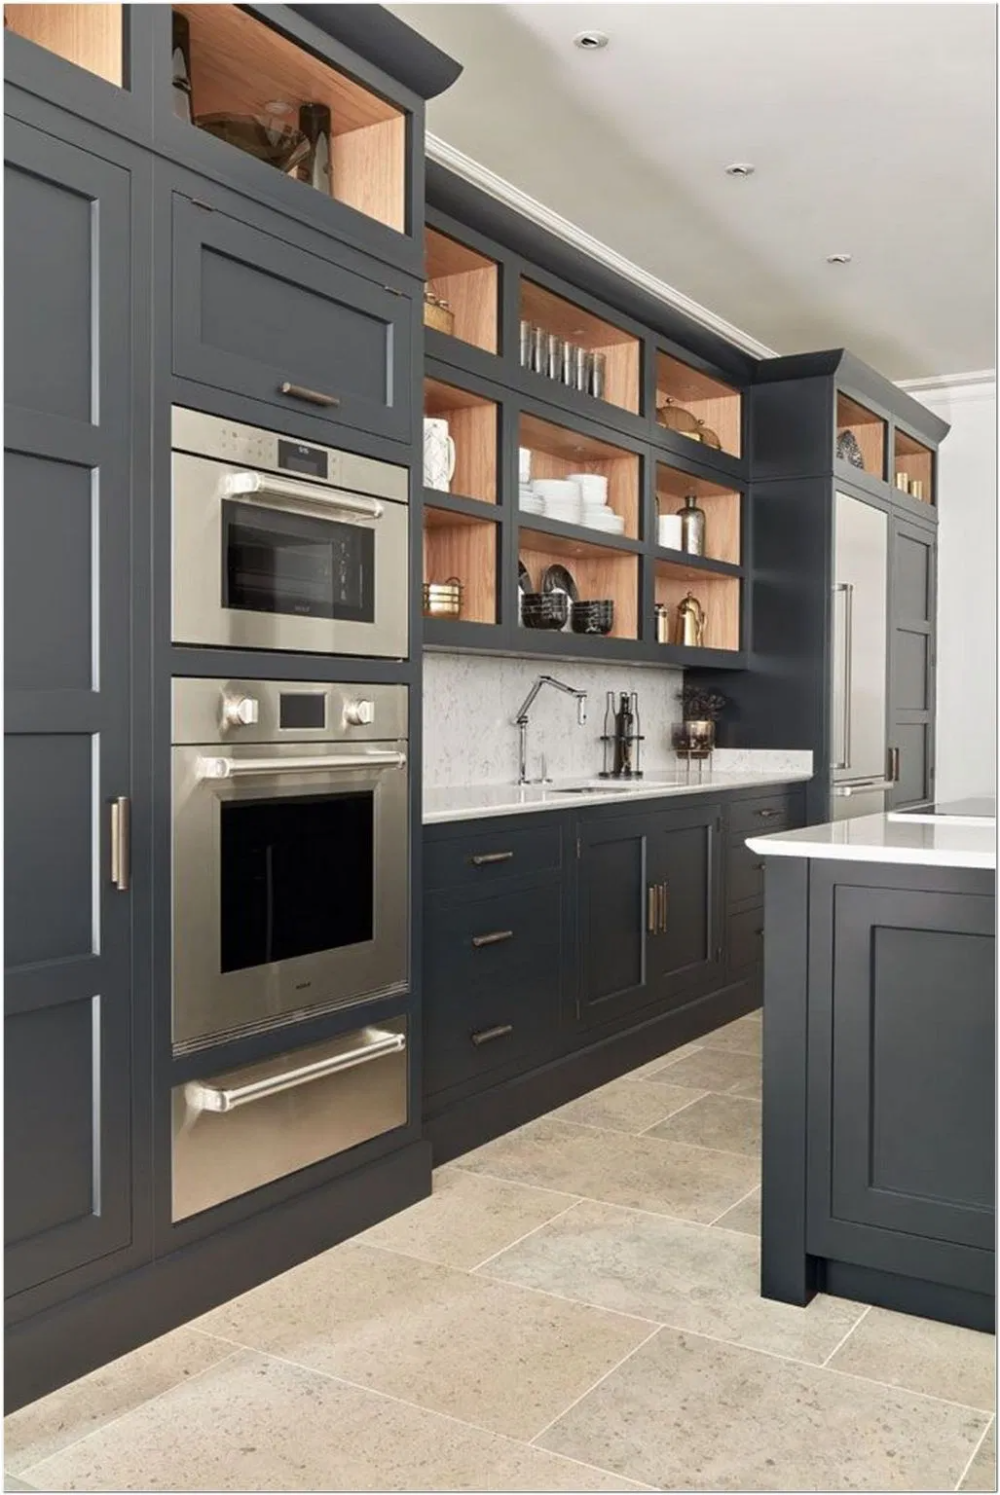 67 Over Cabinet Decor Kitchen Ideas Custom Cabinets For Your Kitchen 8 Onlyhomely In 2020 Grey Kitchen Designs Shaker Style Kitchen Cabinets Simple Kitchen Design